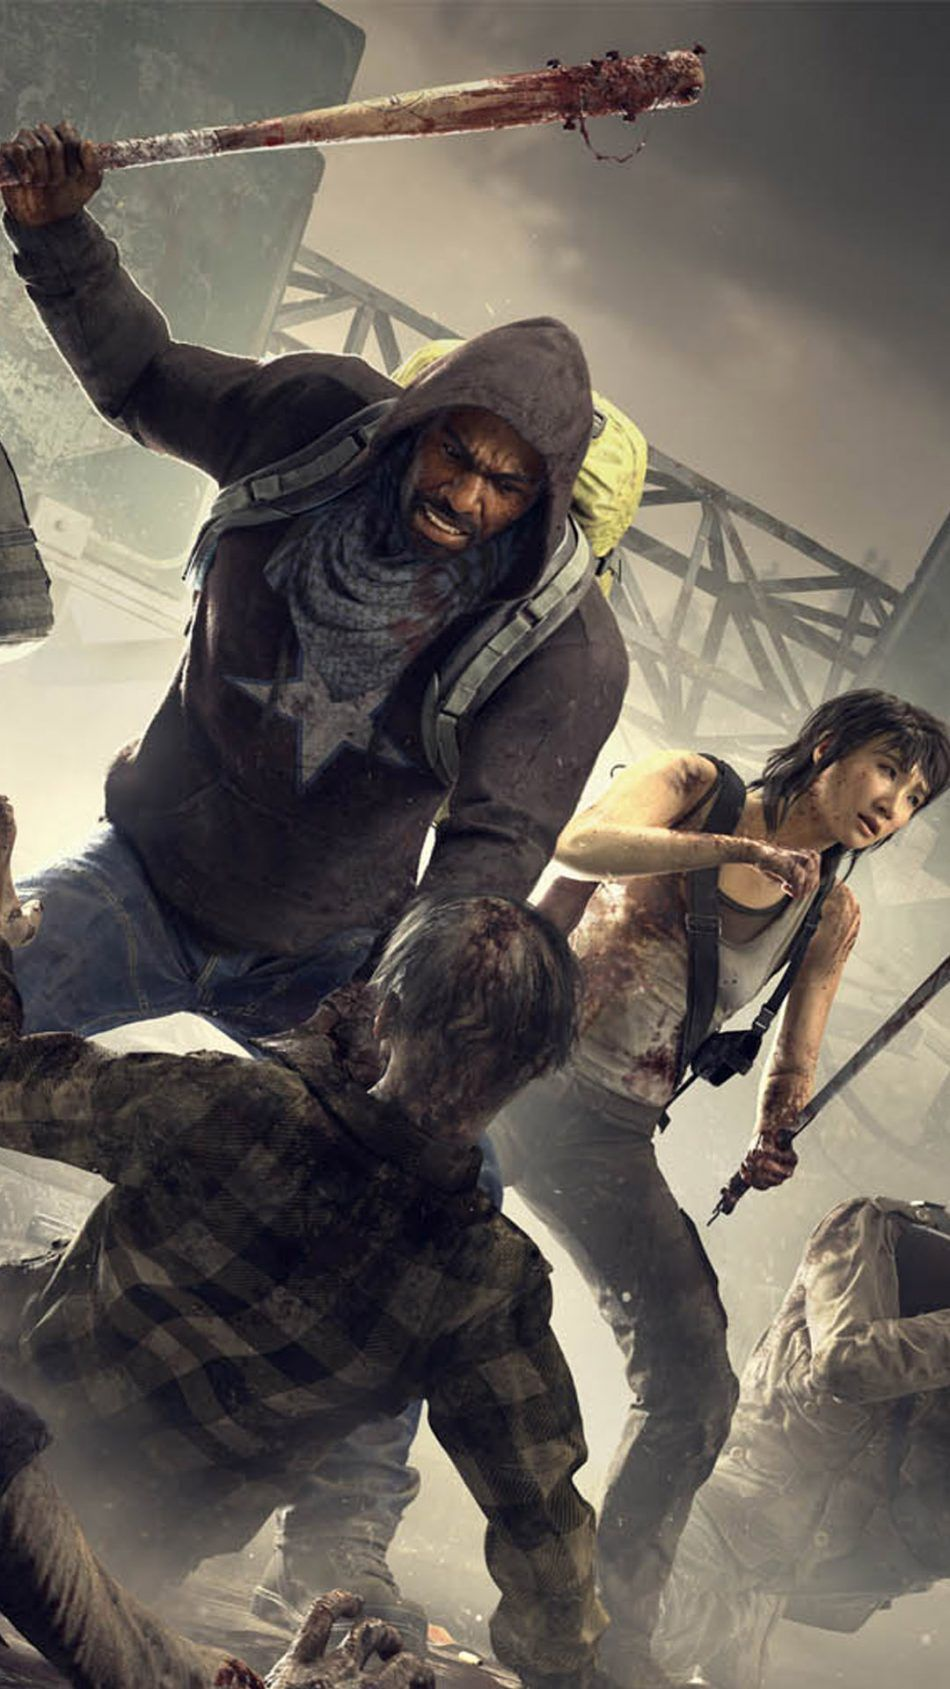 Overkills The Walking Dead Video Game Wallpapers The Walking 950x1689